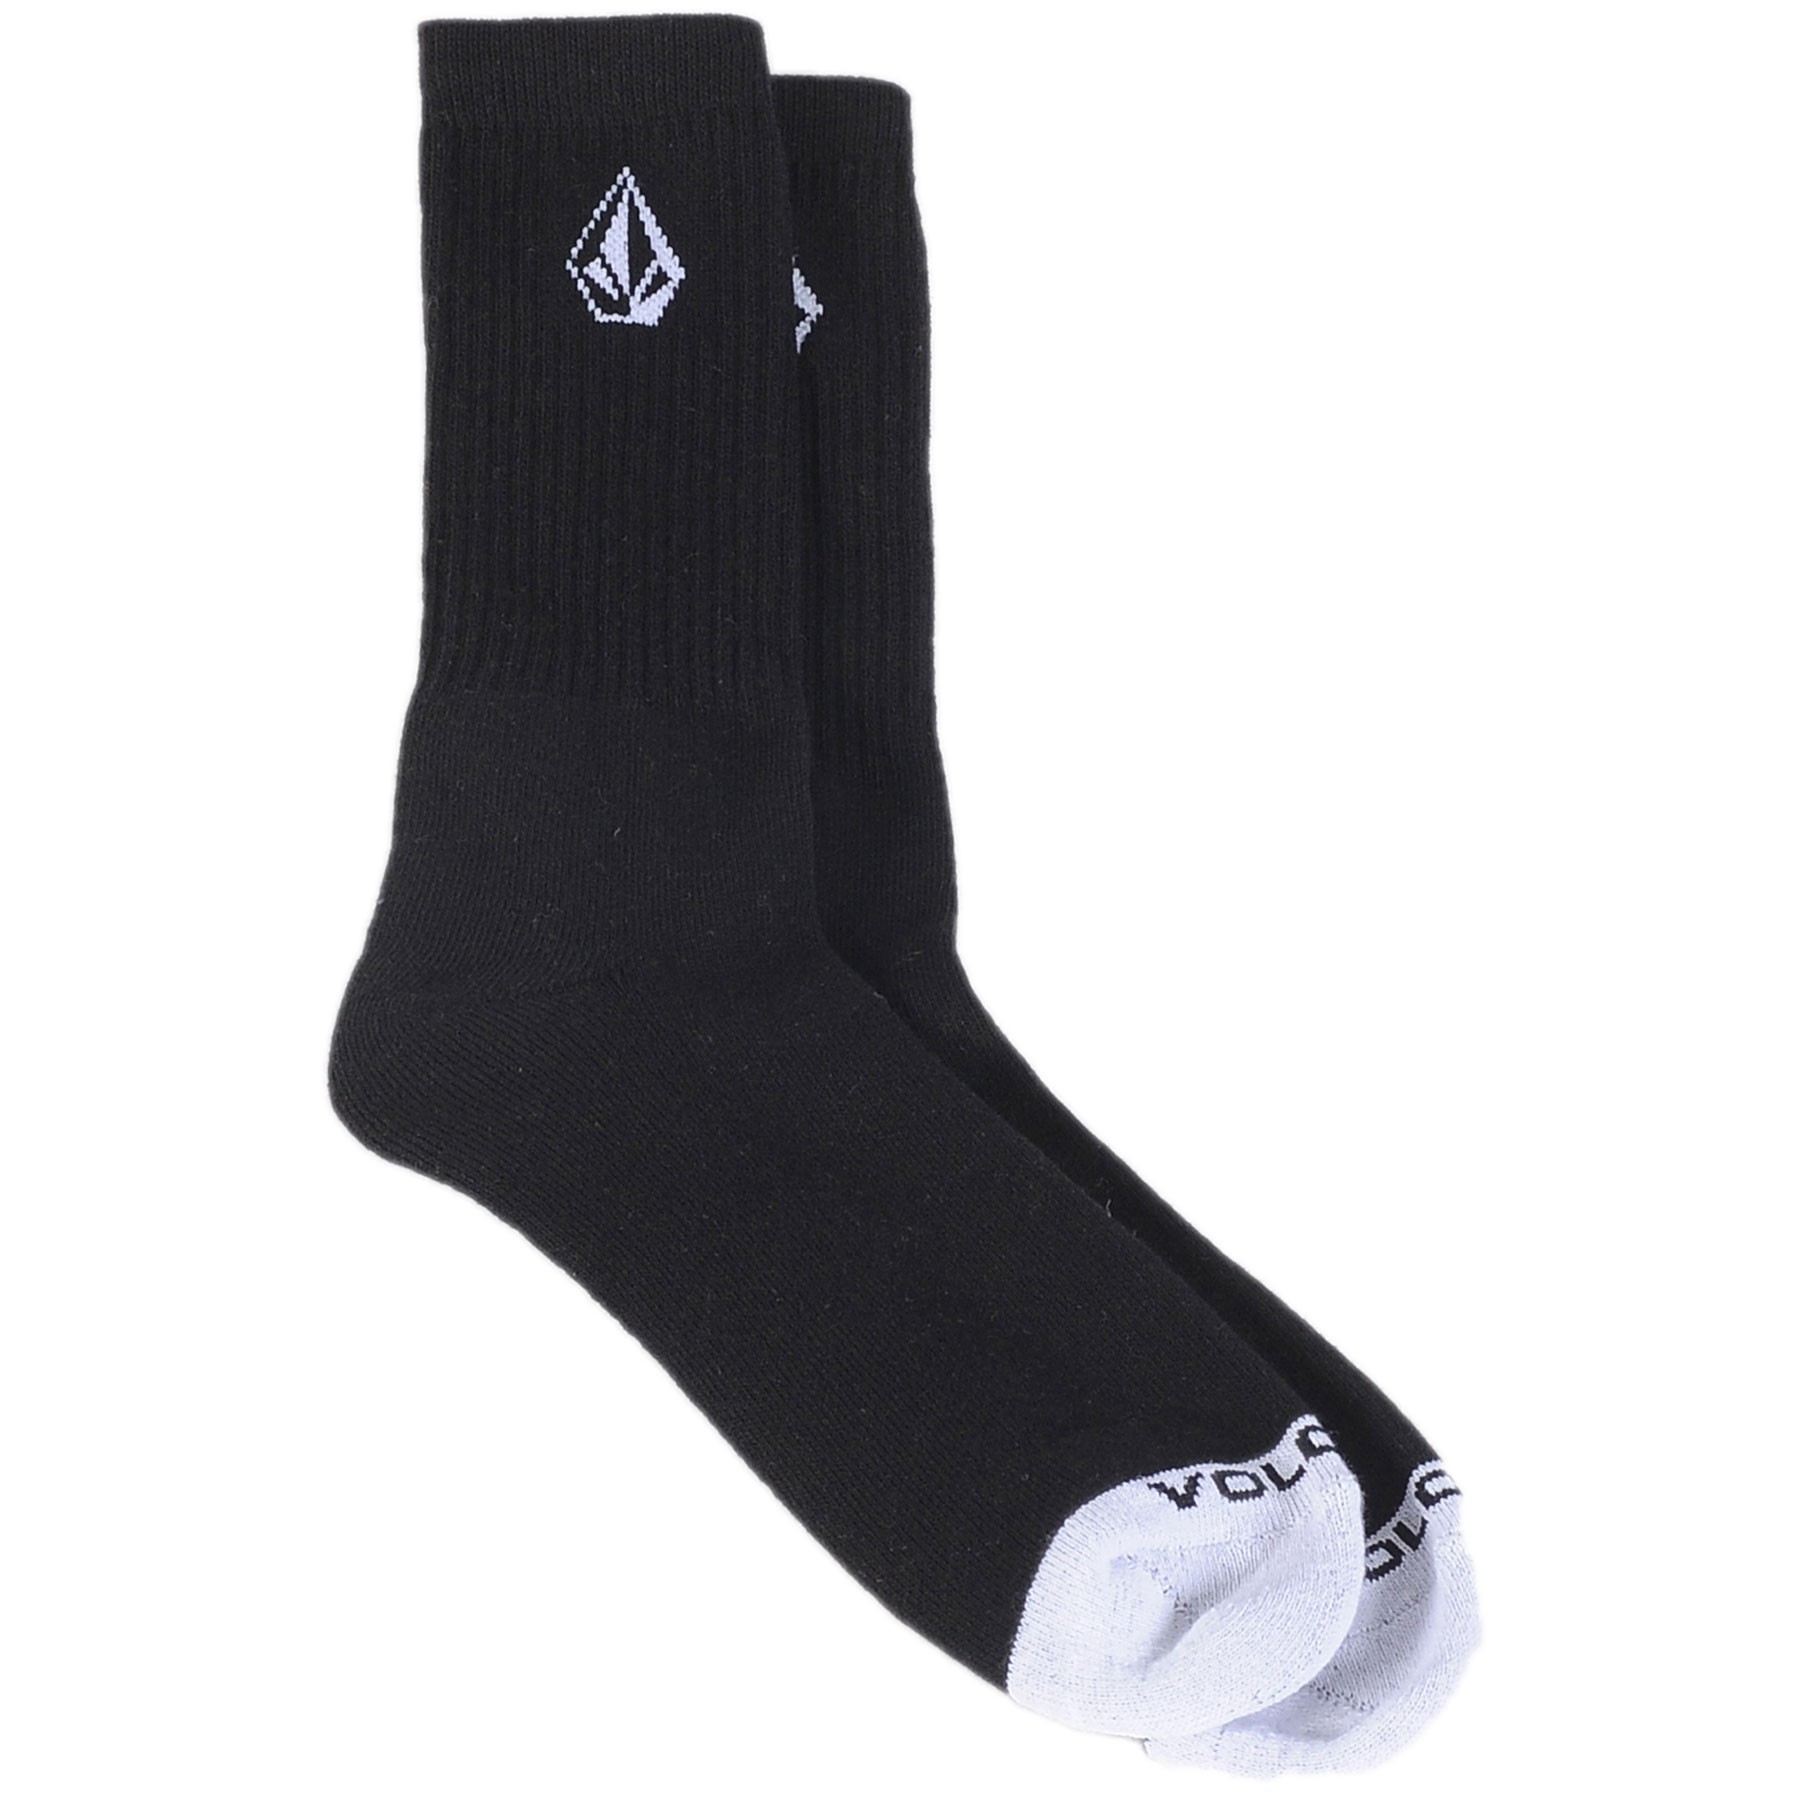 Socks With Stone Logo In Black - Black Volcom Free Shipping Wholesale Price qOnwnUMk